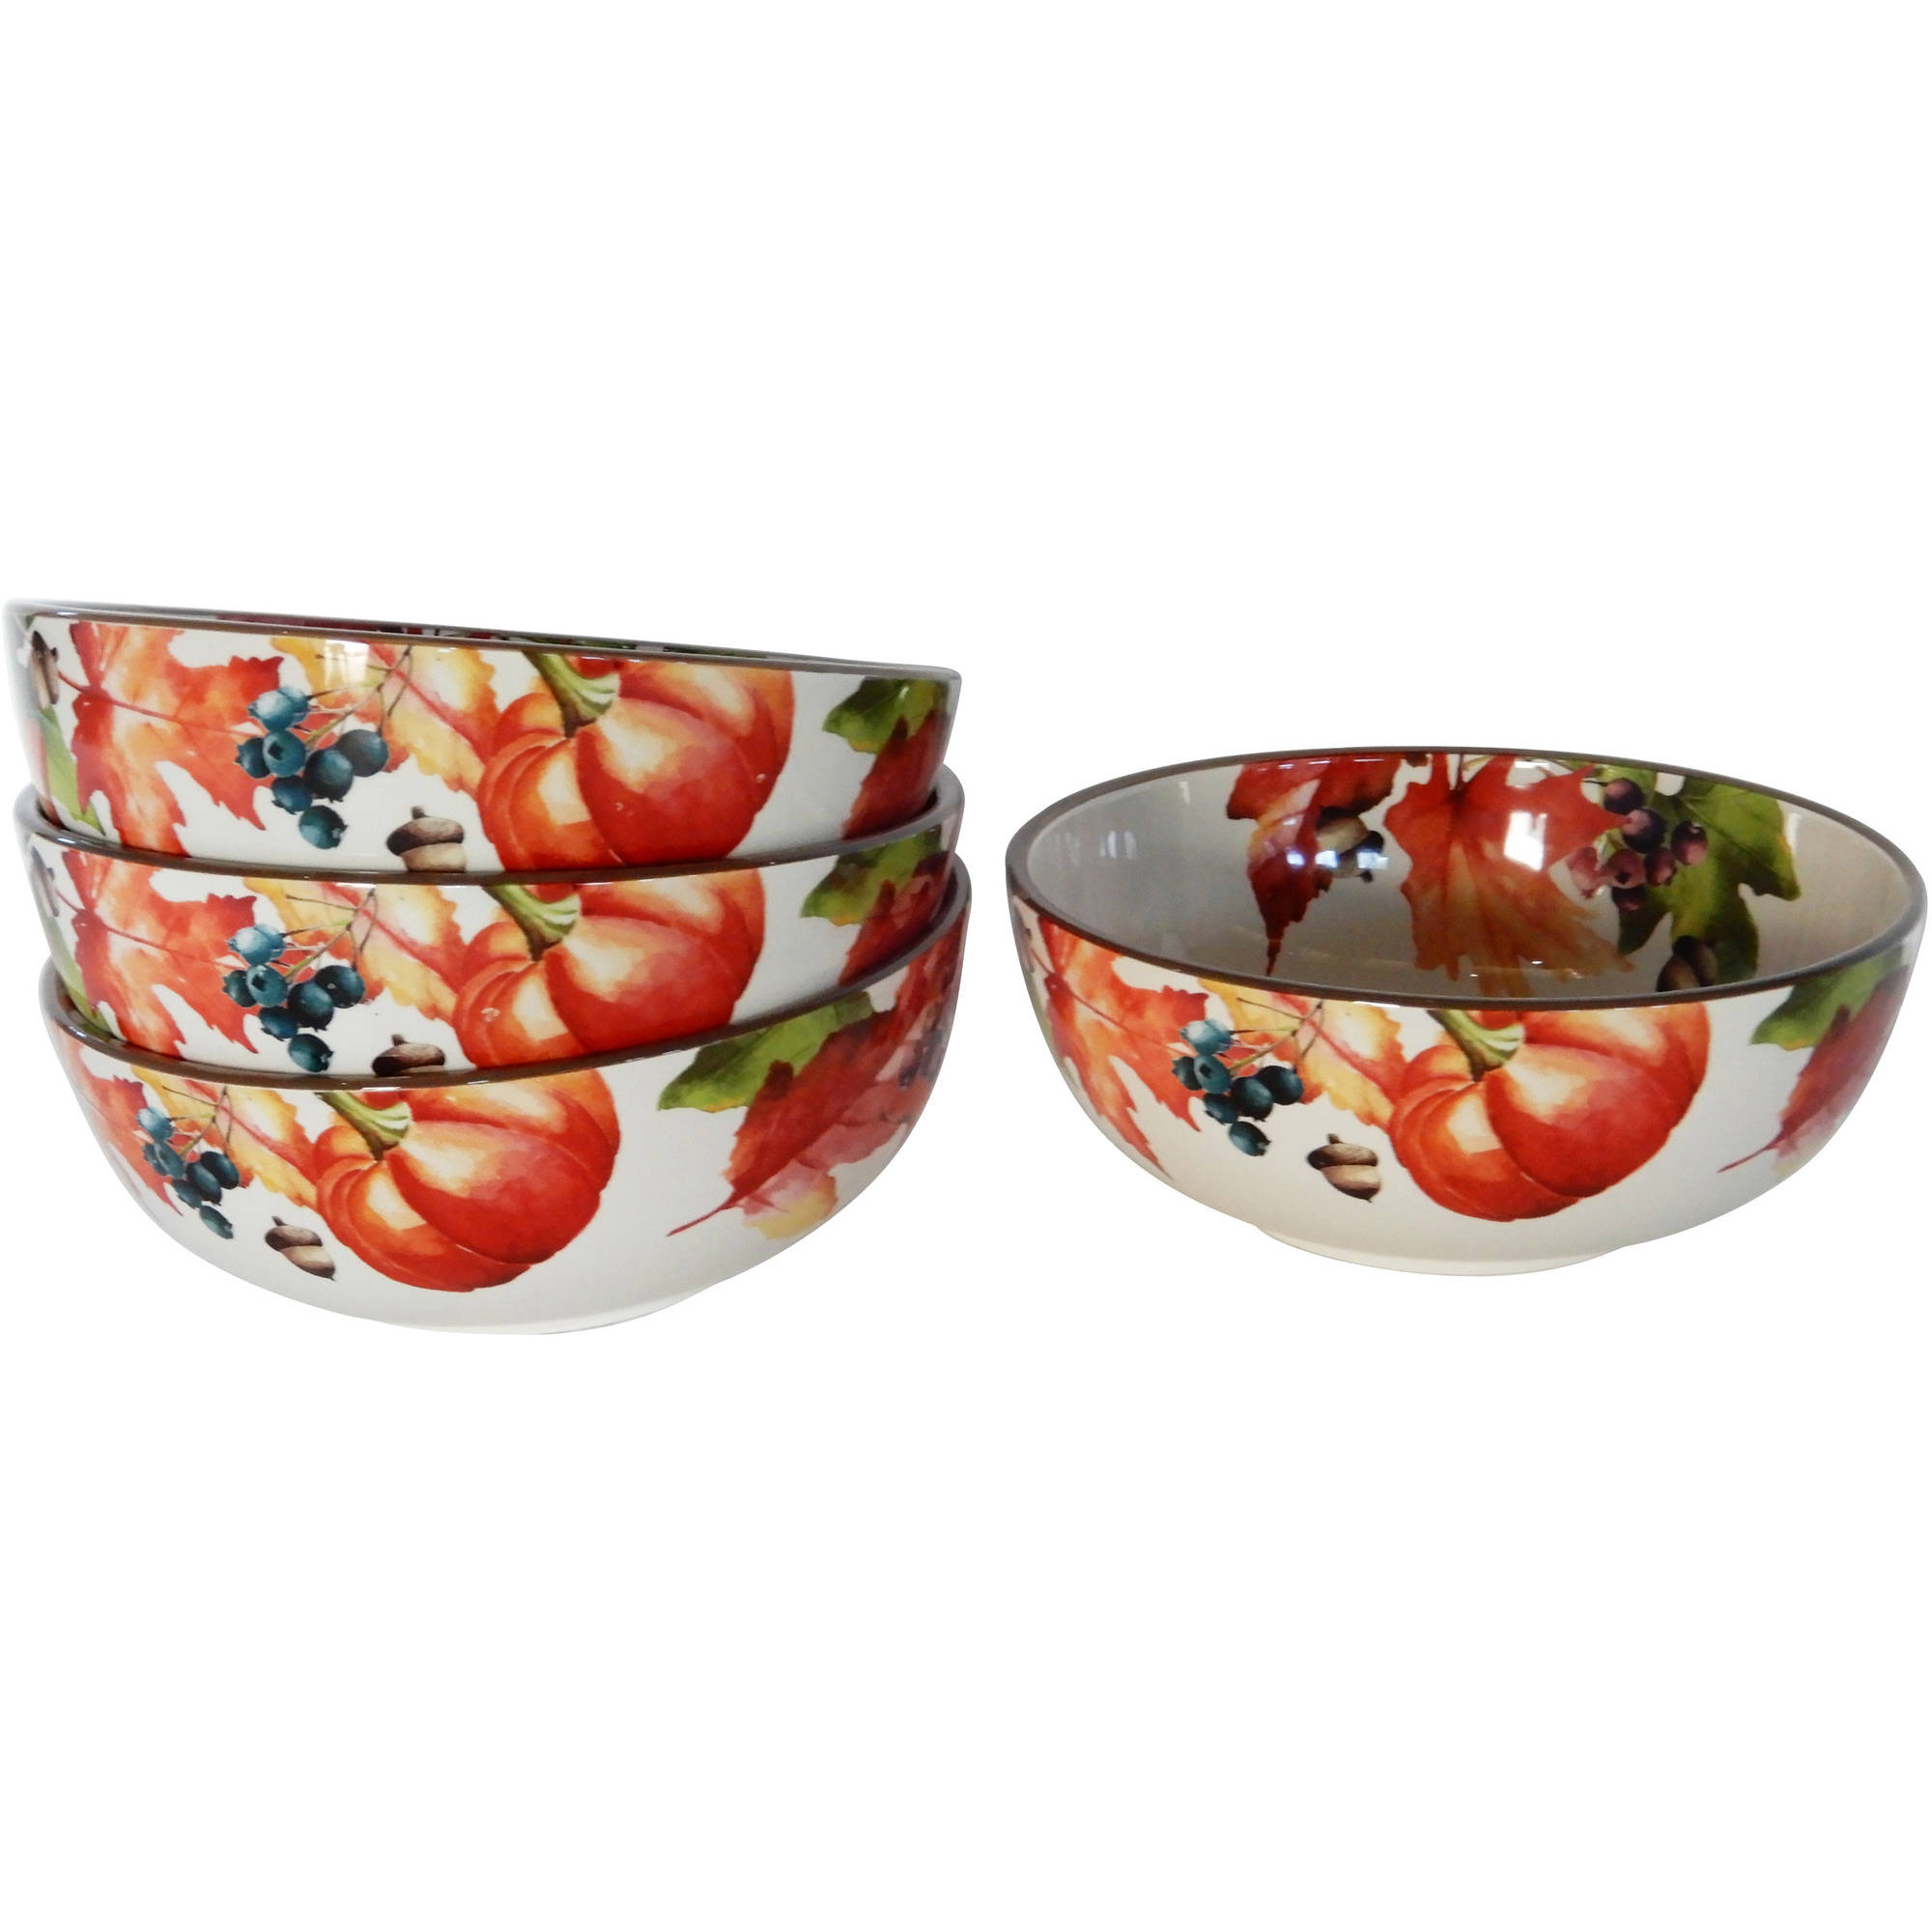 Better Homes and Gardens 4pk Bundle of Botanical Soup Bowl